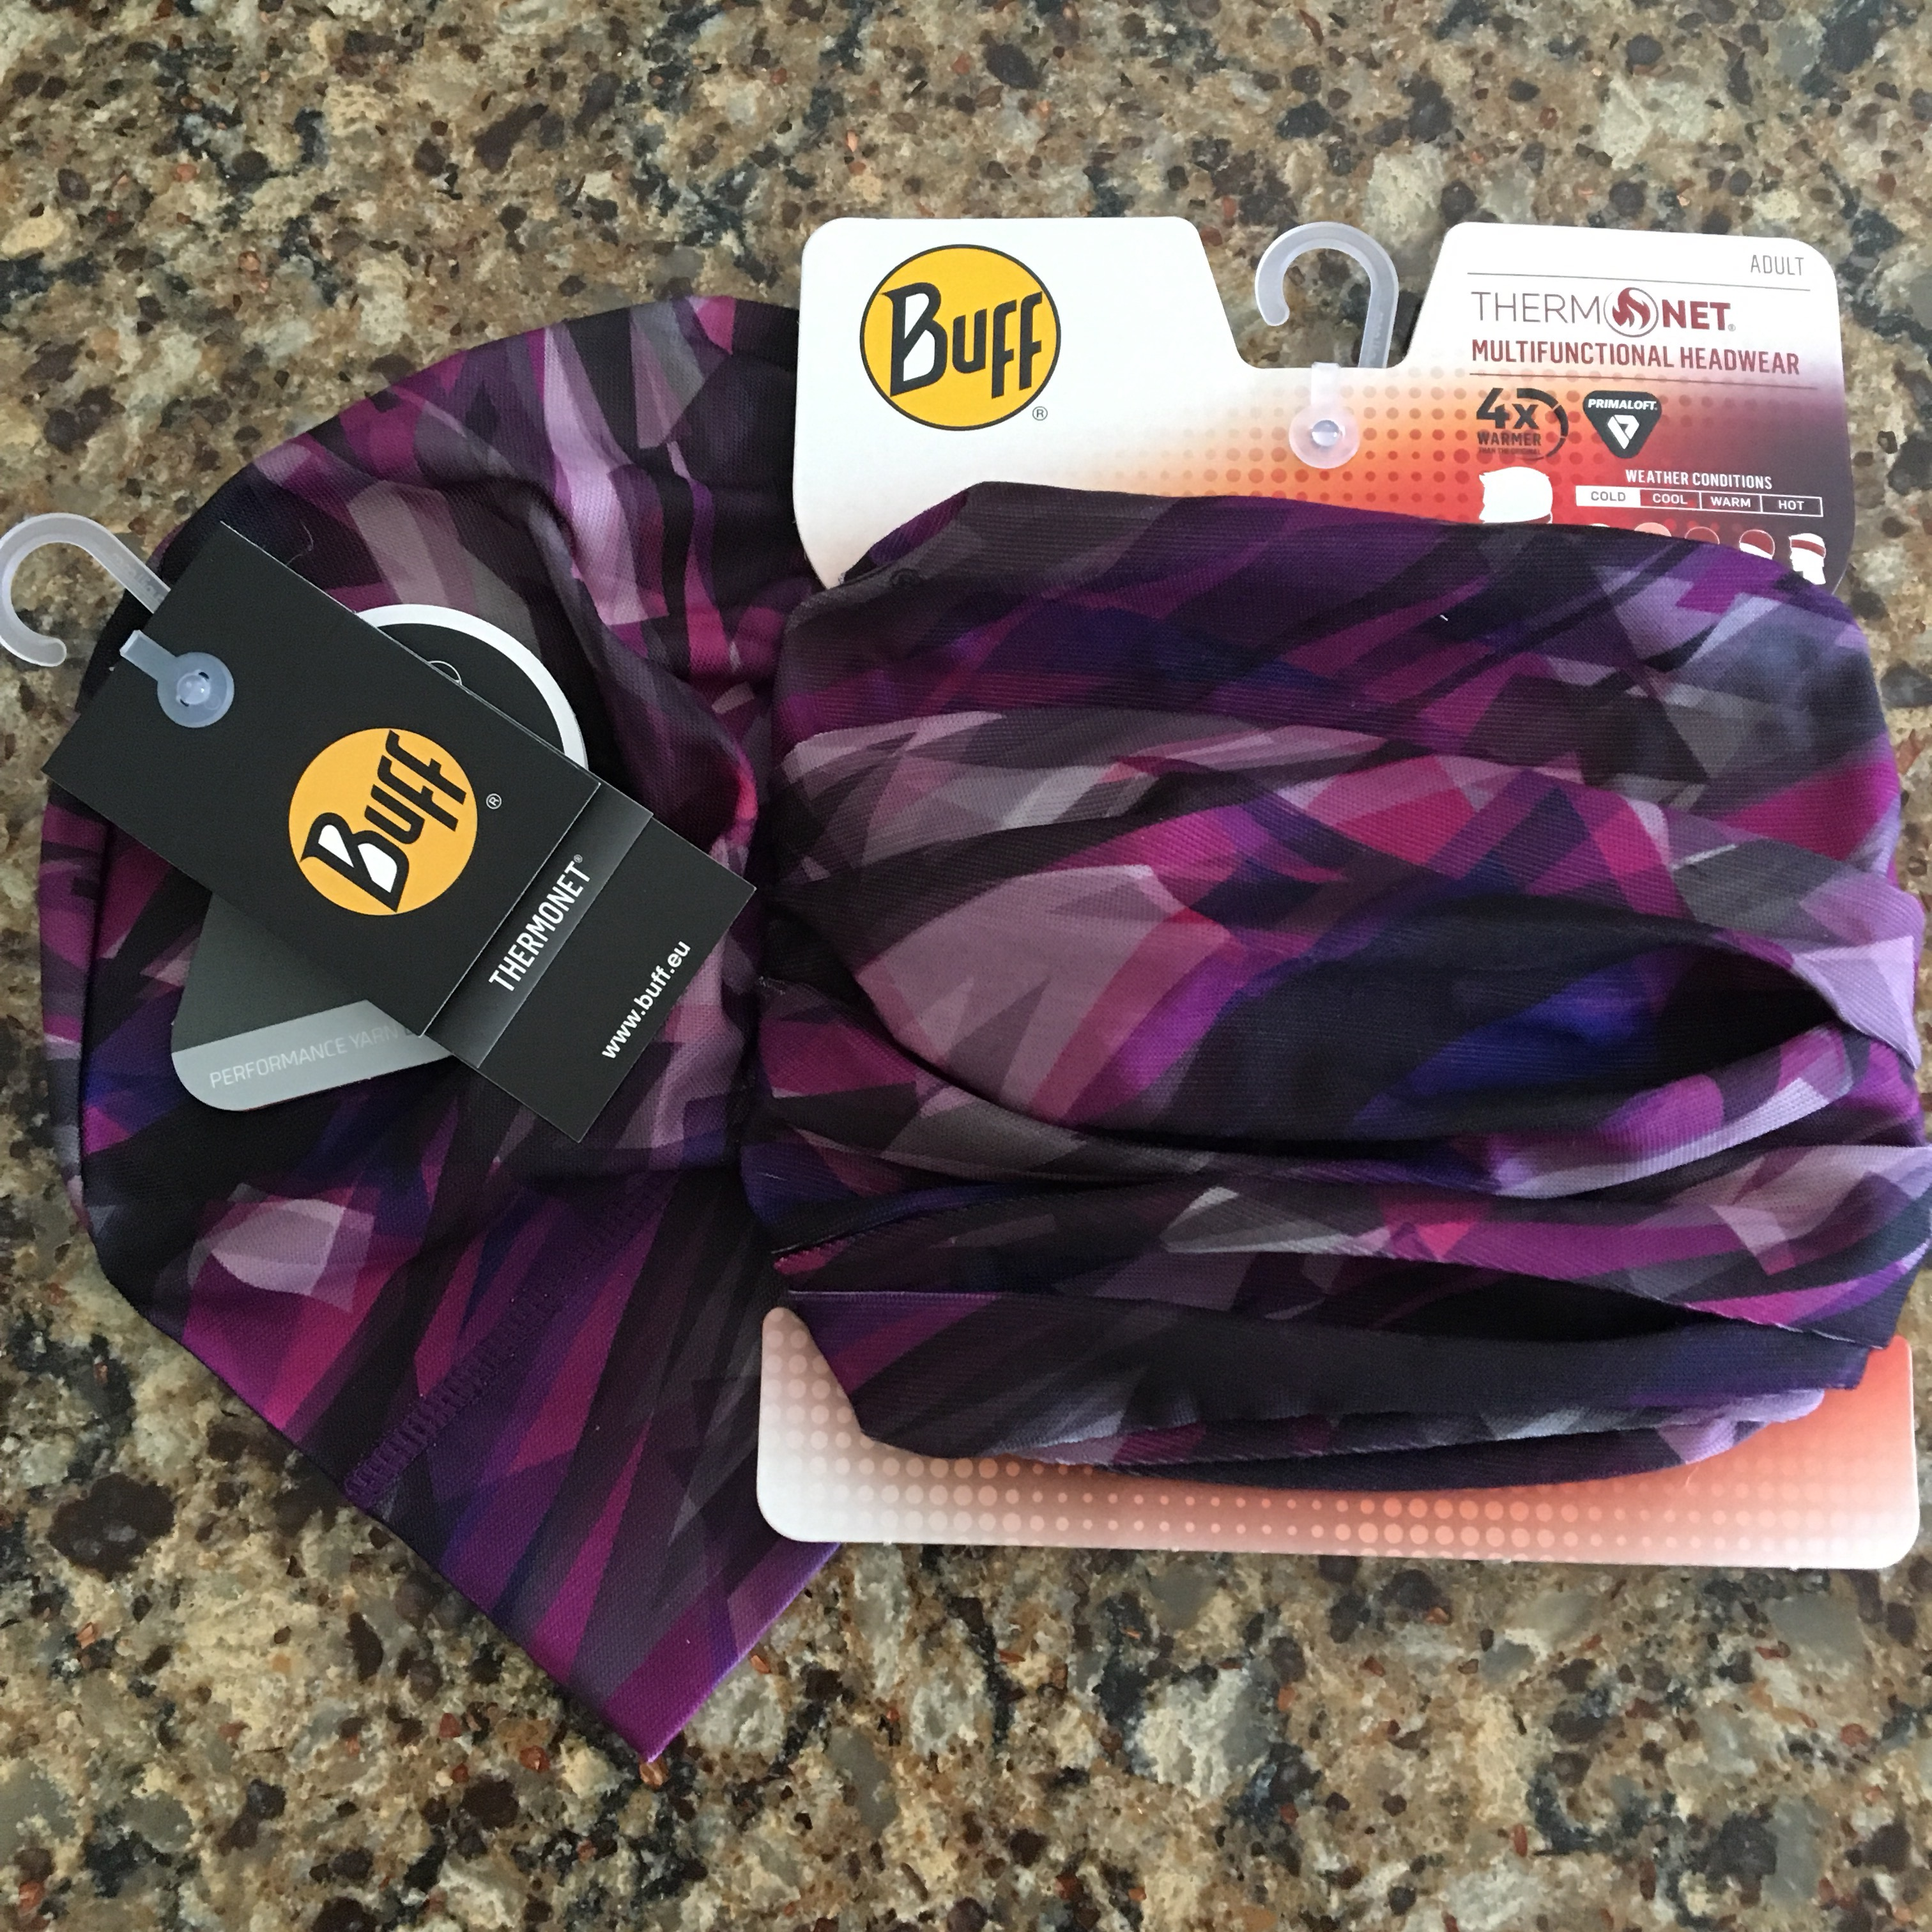 I have welcomed another BUFF® multifunctional head wrap into my home! I  have quite the collection 174427e424d